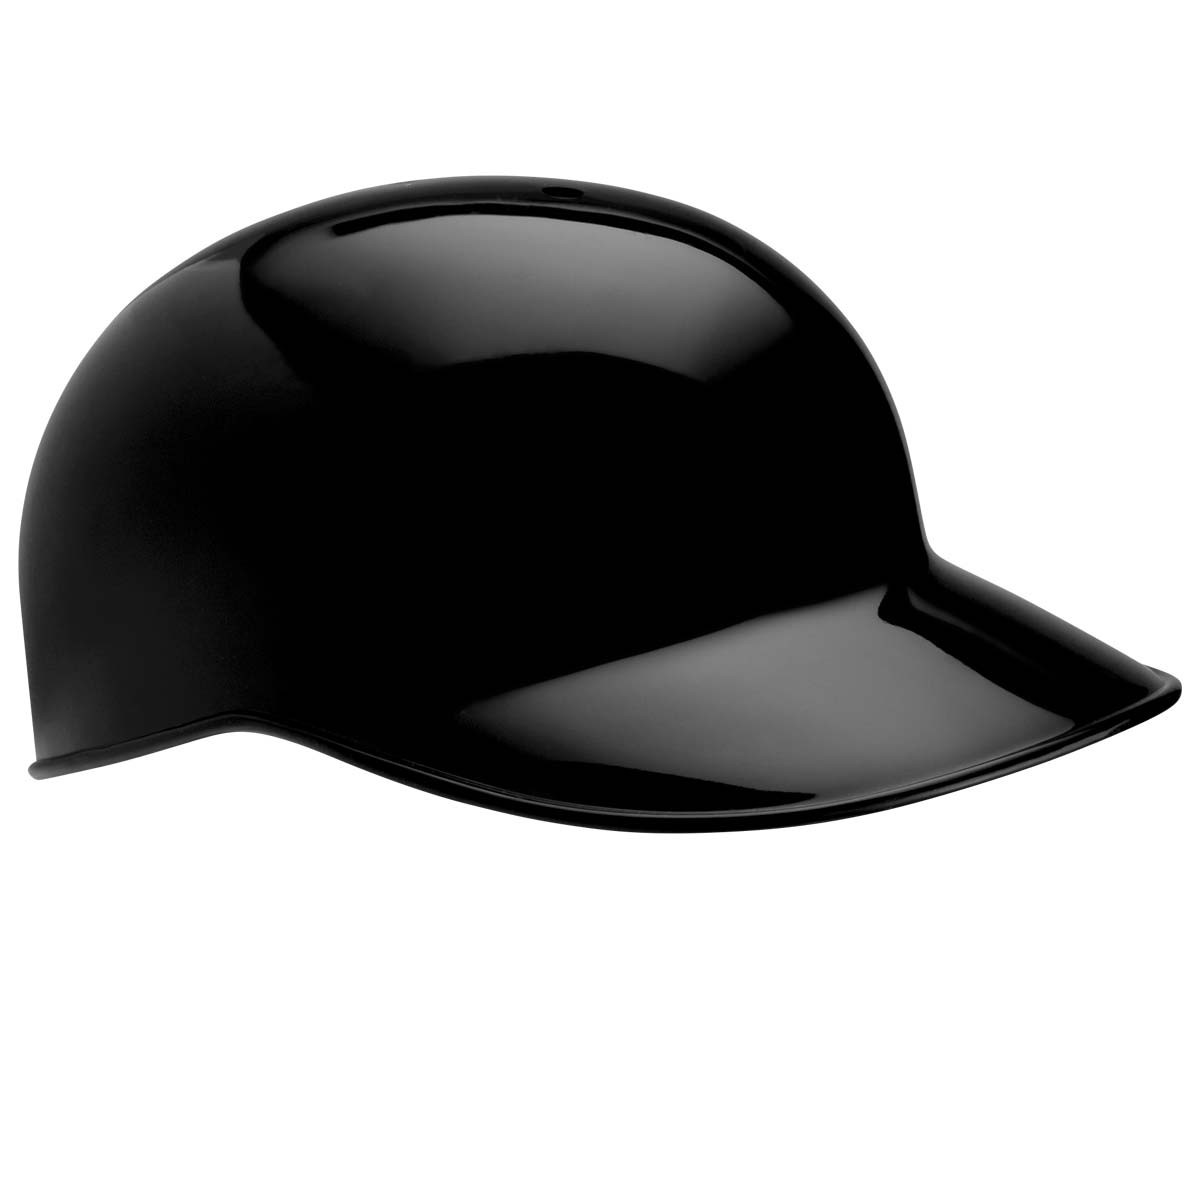 black single women in rawlings Results 1 - 30 of 34  coolflo high school/college batting helmet black coolflo high school/college  batting helmet  coolflo single flap batting helmet.